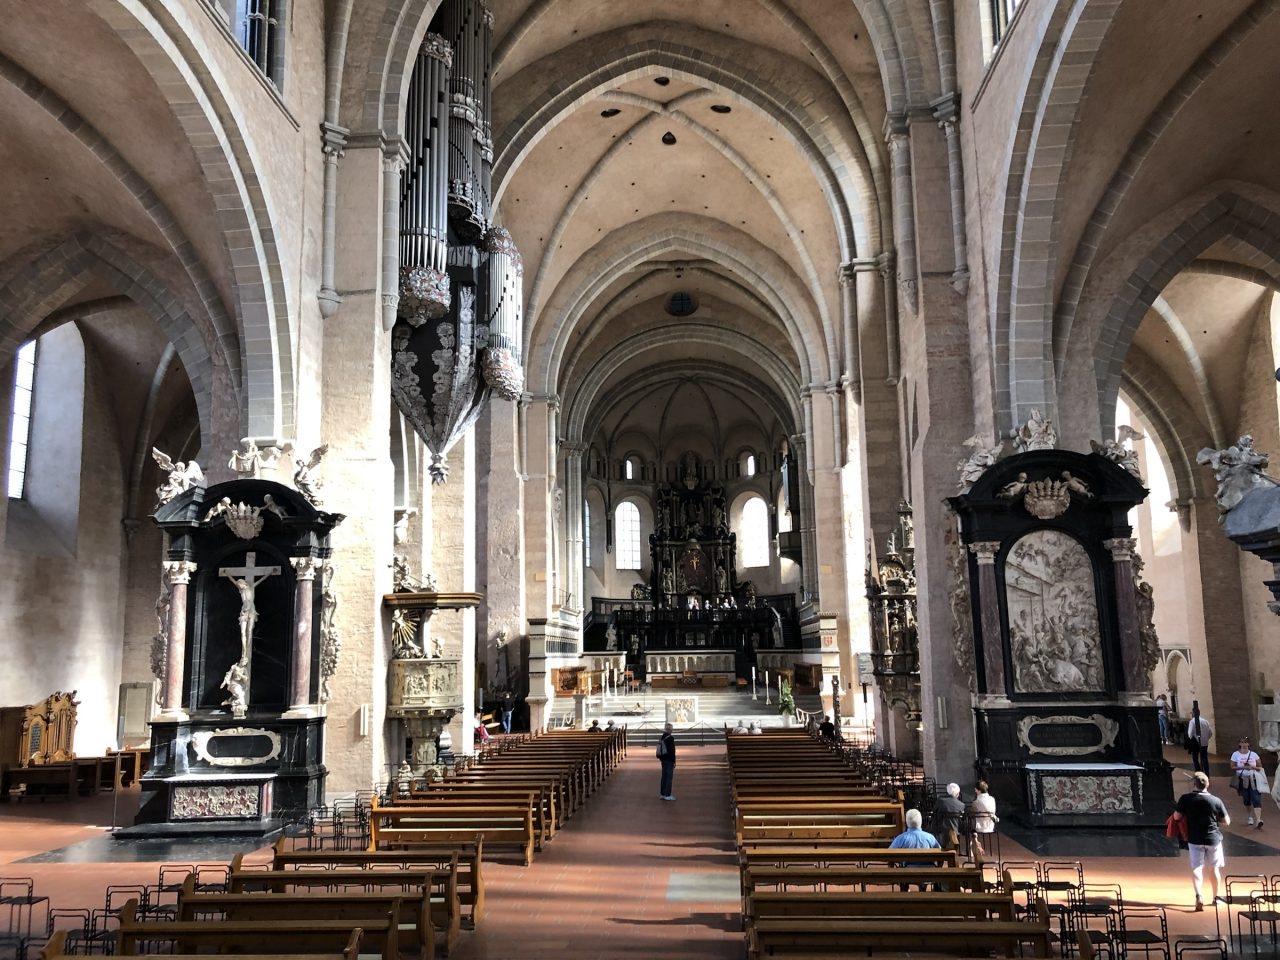 Cathedral of Trier interior